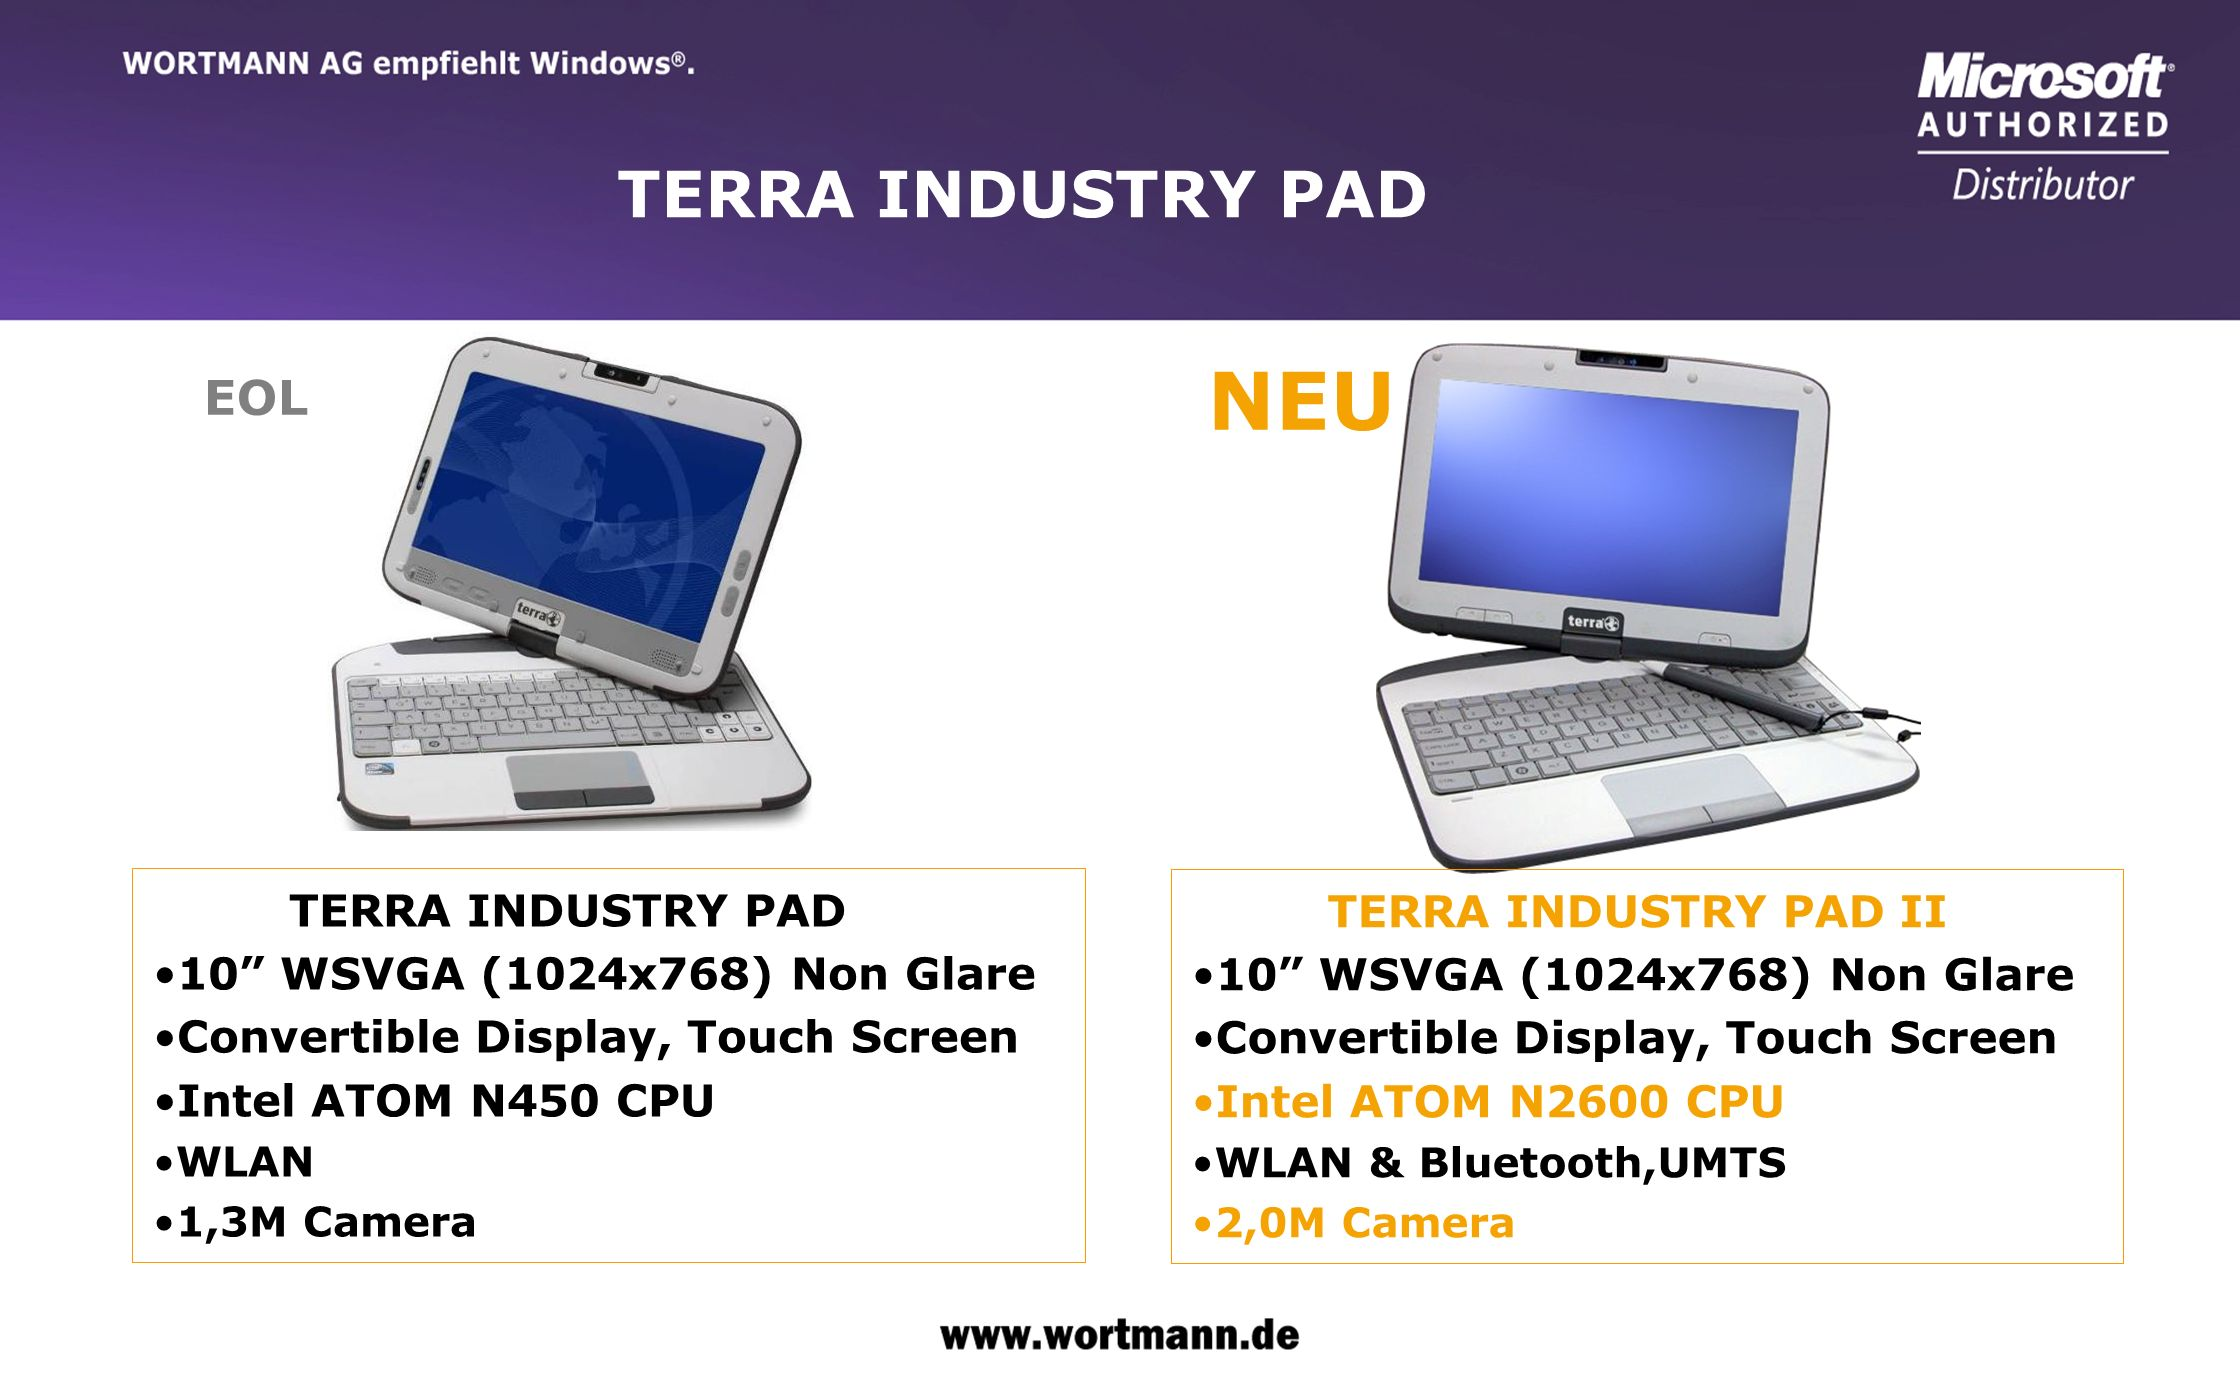 www.wortmann.de TERRA INDUSTRY PAD 10 WSVGA (1024x768) Non Glare Convertible Display, Touch Screen Intel ATOM N450 CPU WLAN 1,3M Camera TERRA INDUSTRY